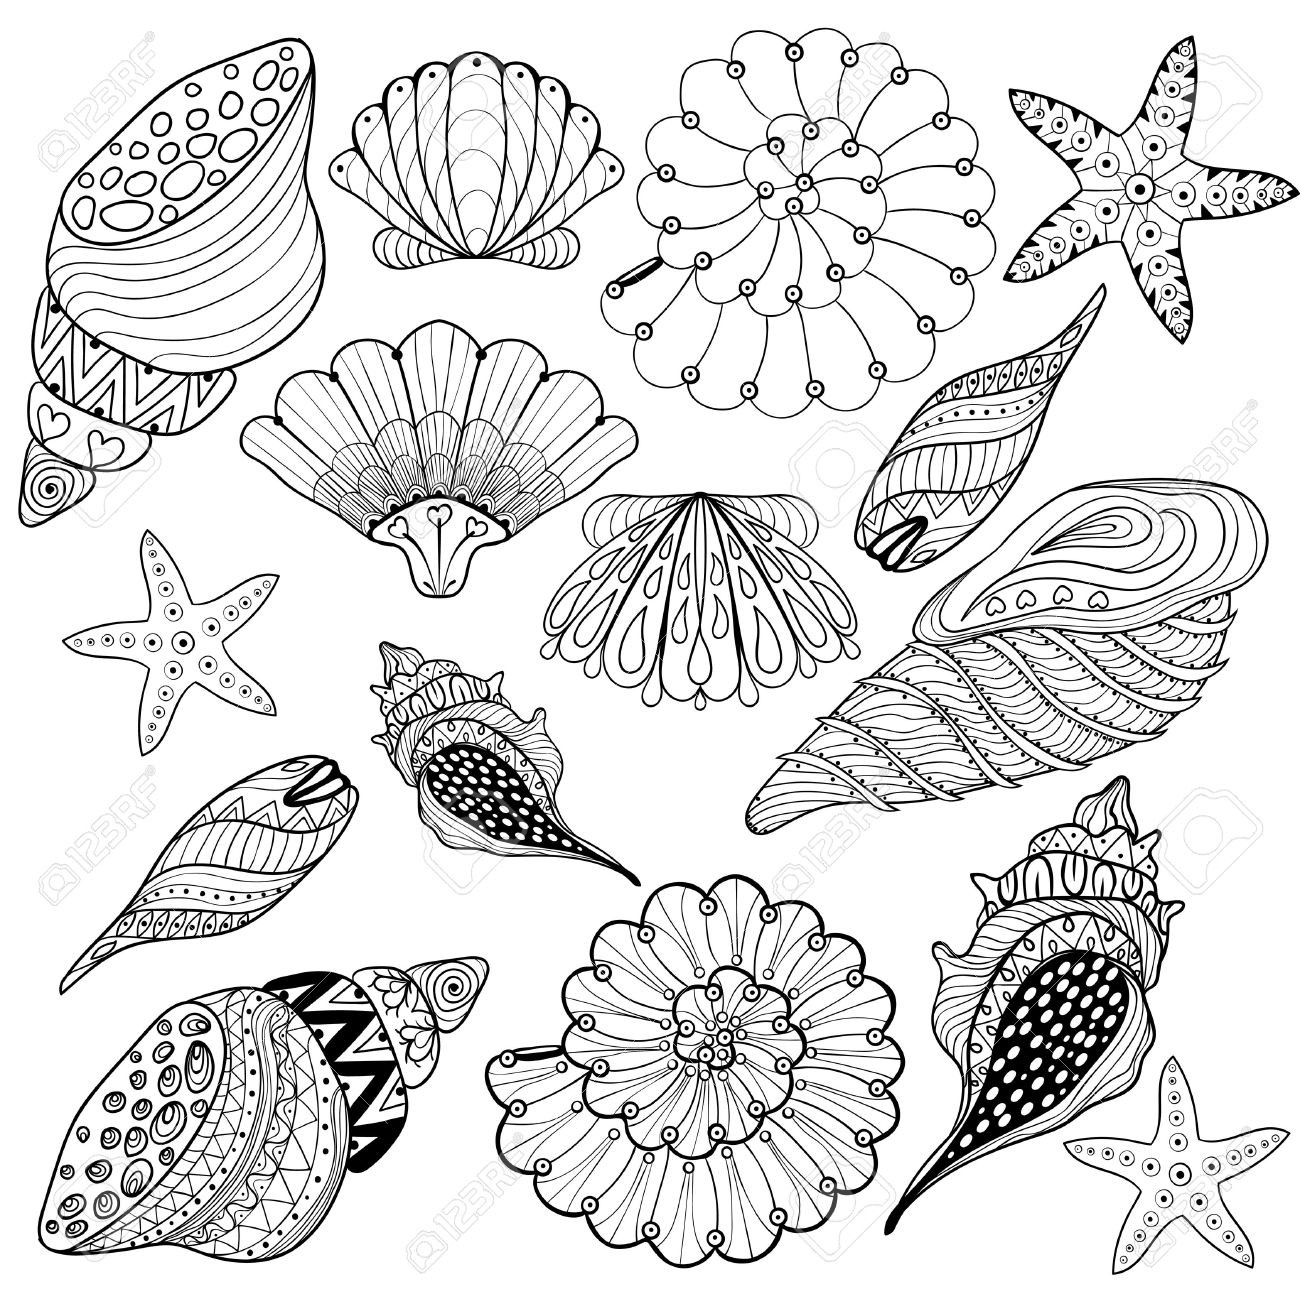 Conch Shell Coloring Page At Getdrawings Free Download